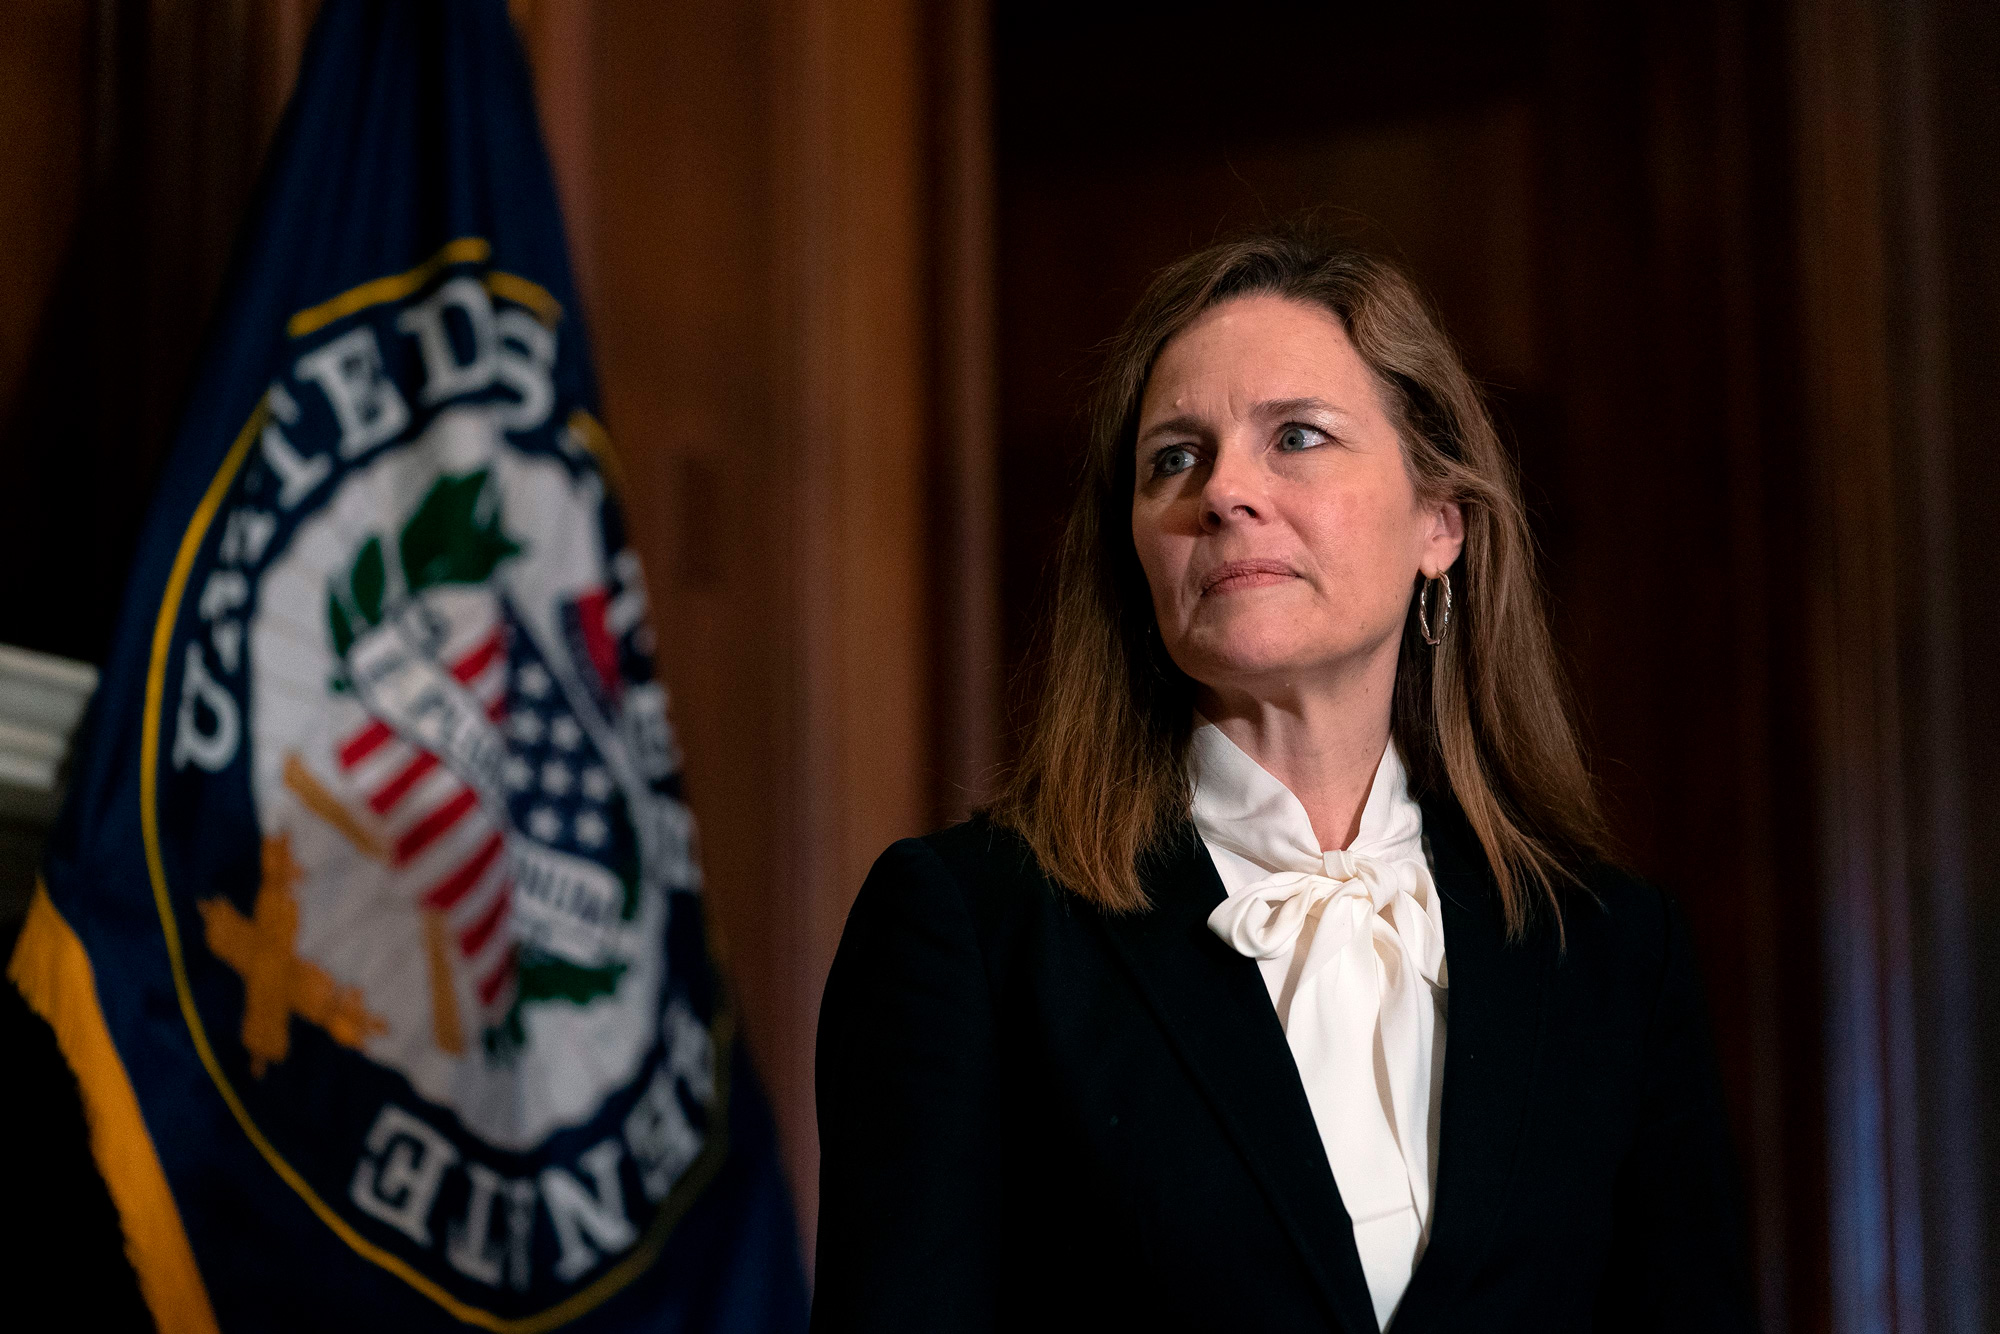 Judge Amy Coney Barrett meets with Sen. John Hoeven on Capitol Hill in Washington, DC, on October, 1.